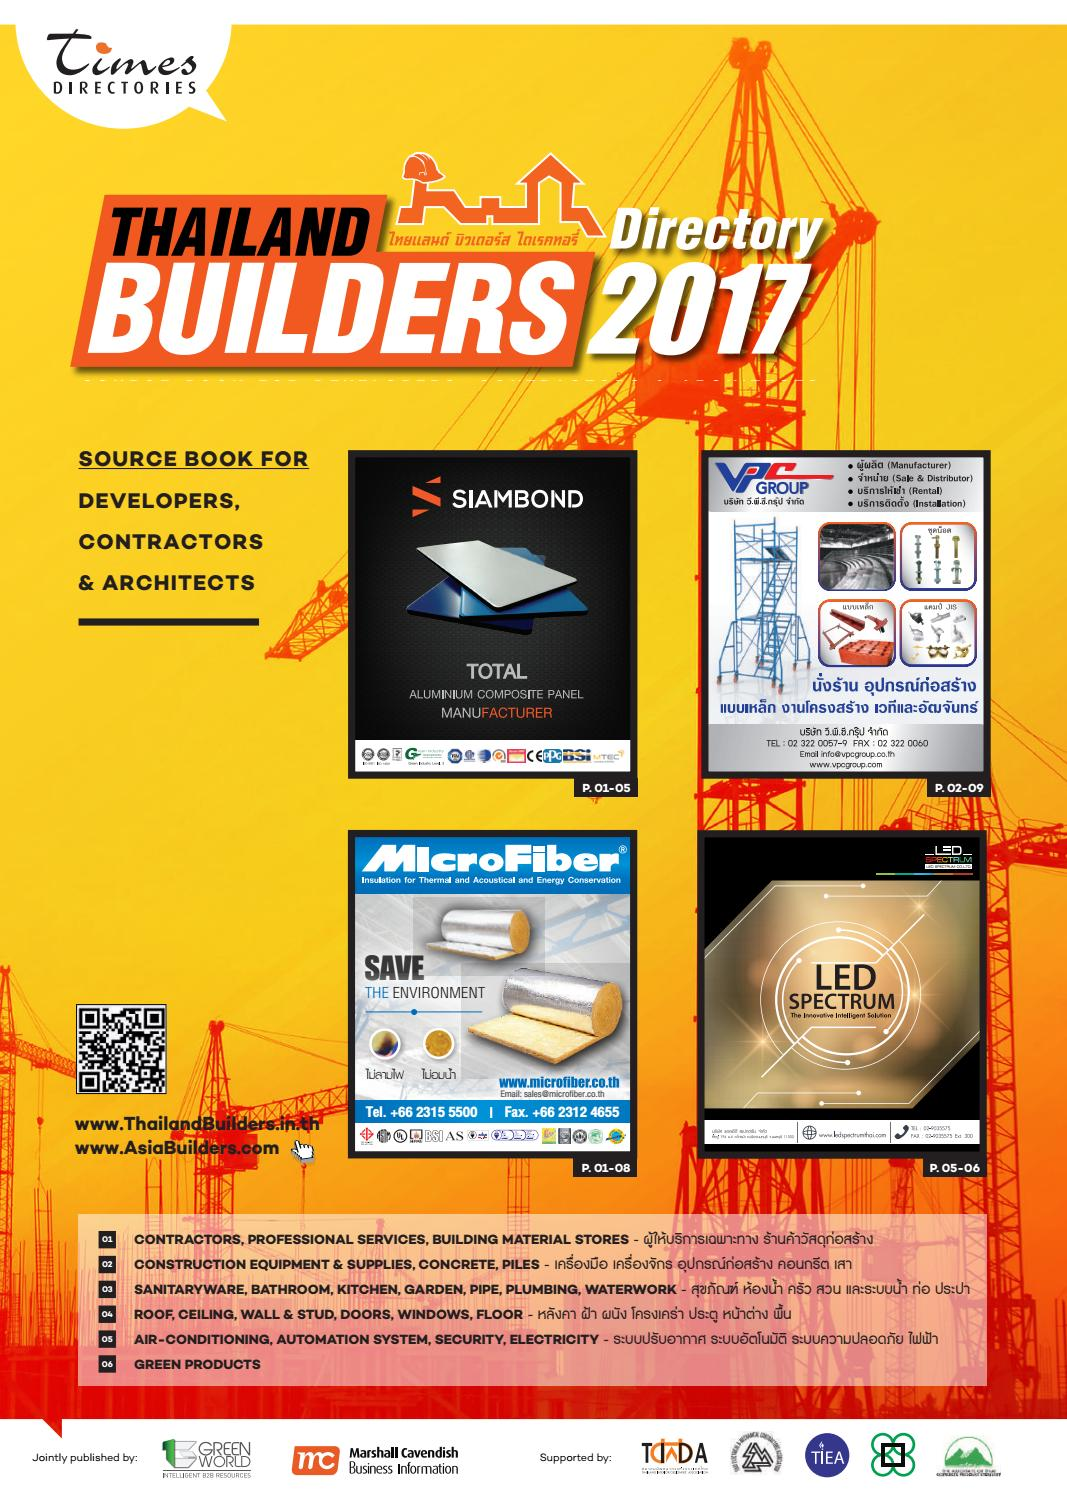 thailand builders directory 2017 by green world